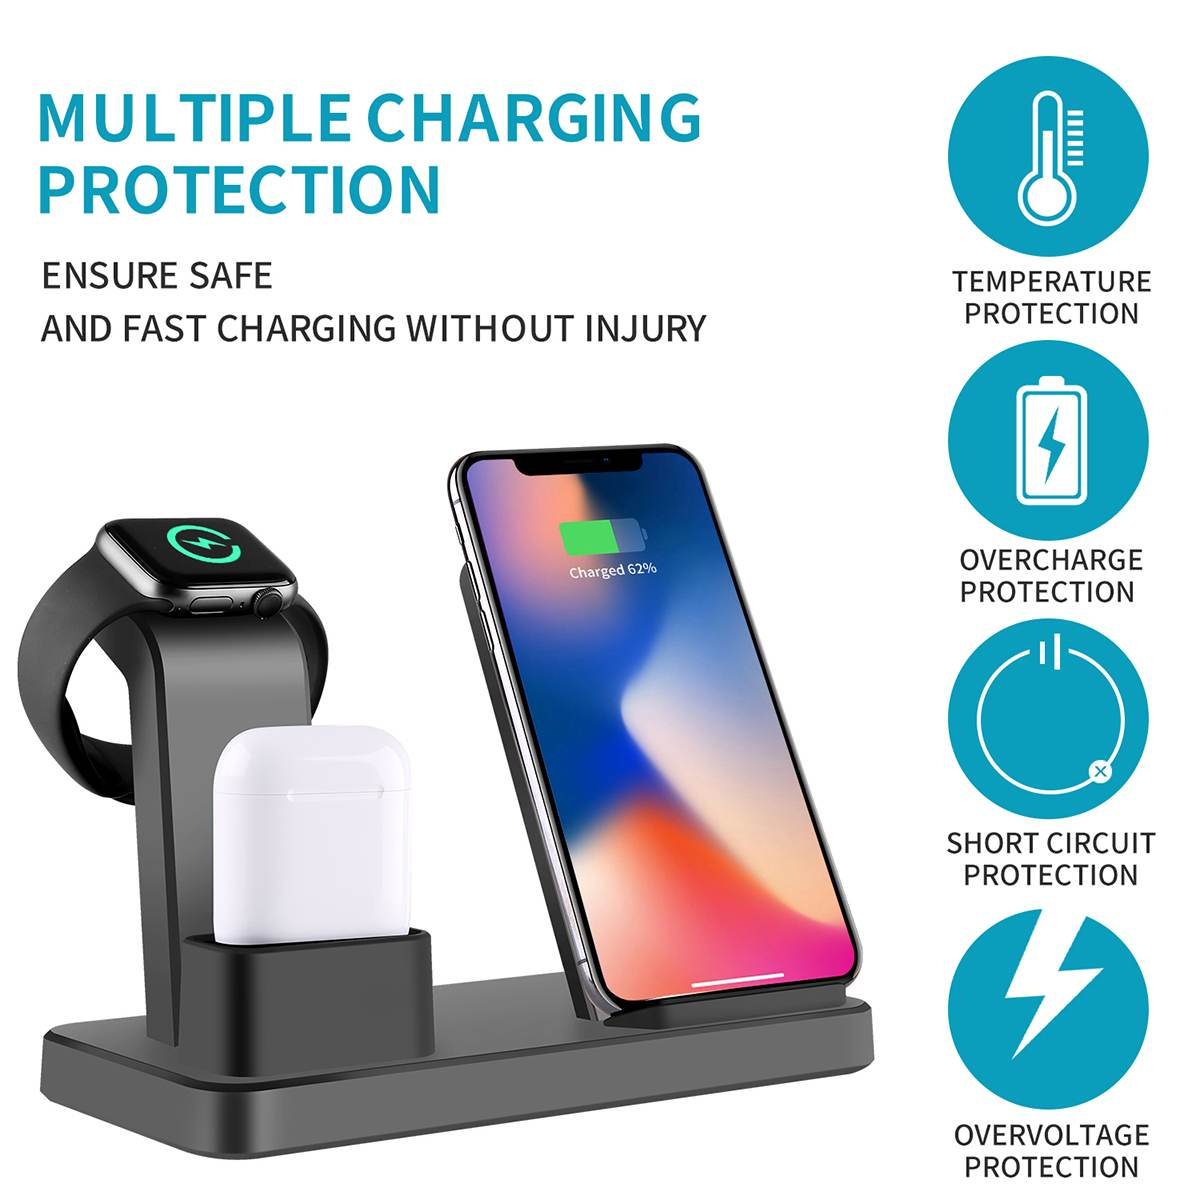 3in1 10W Qi Wireless Charger for Airpods Charger For Iphone XR XS 8 X Fast Charging For Apple Watch 4 3 2 Charger Stand Holder3in1 10W Qi Wireless Charger for Airpods Charger For Iphone XR XS 8 X Fast Charging For Apple Watch 4 3 2 Charger Stand Holder